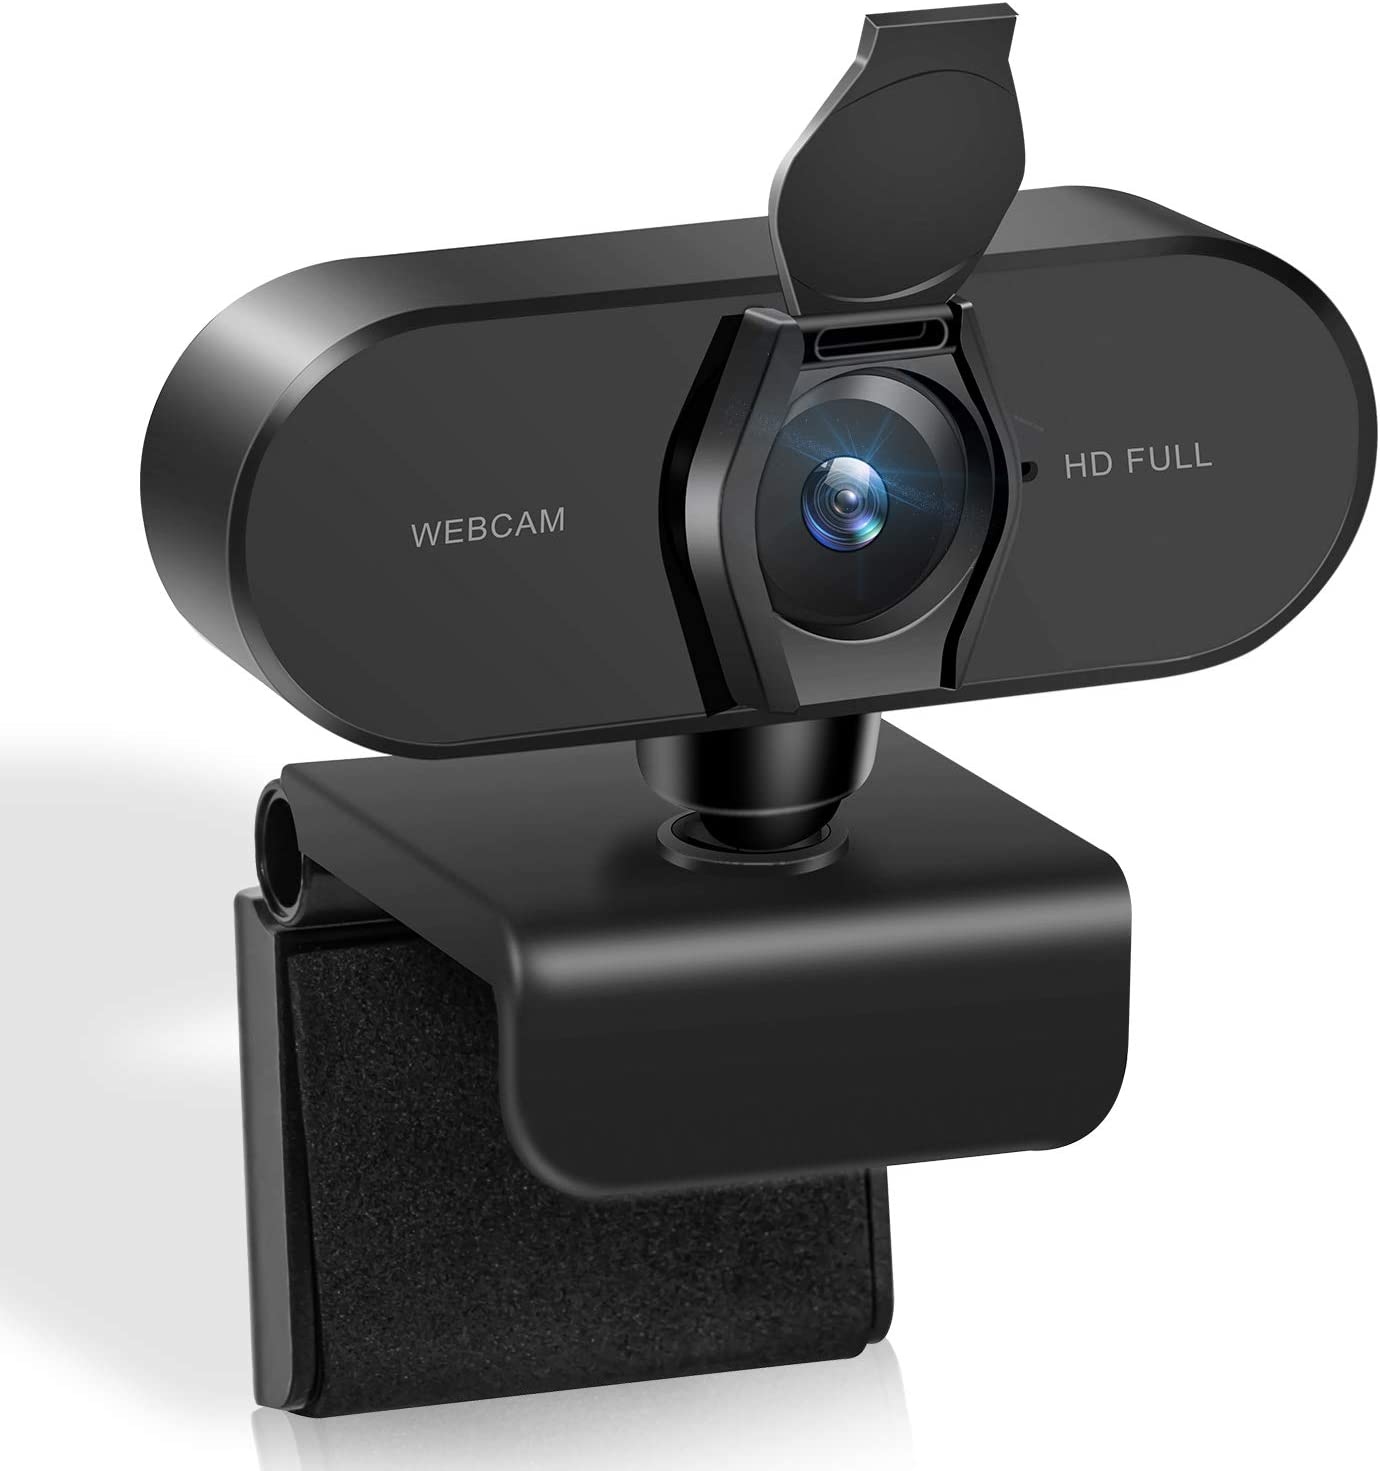 1080P HD Streaming Webcam with USB Plug and Play for PC//Mac//Laptop//Desktop Gr8ware Webcam with Microphone Video Call Web Camera for Skype,Online Meeting//Study Recording